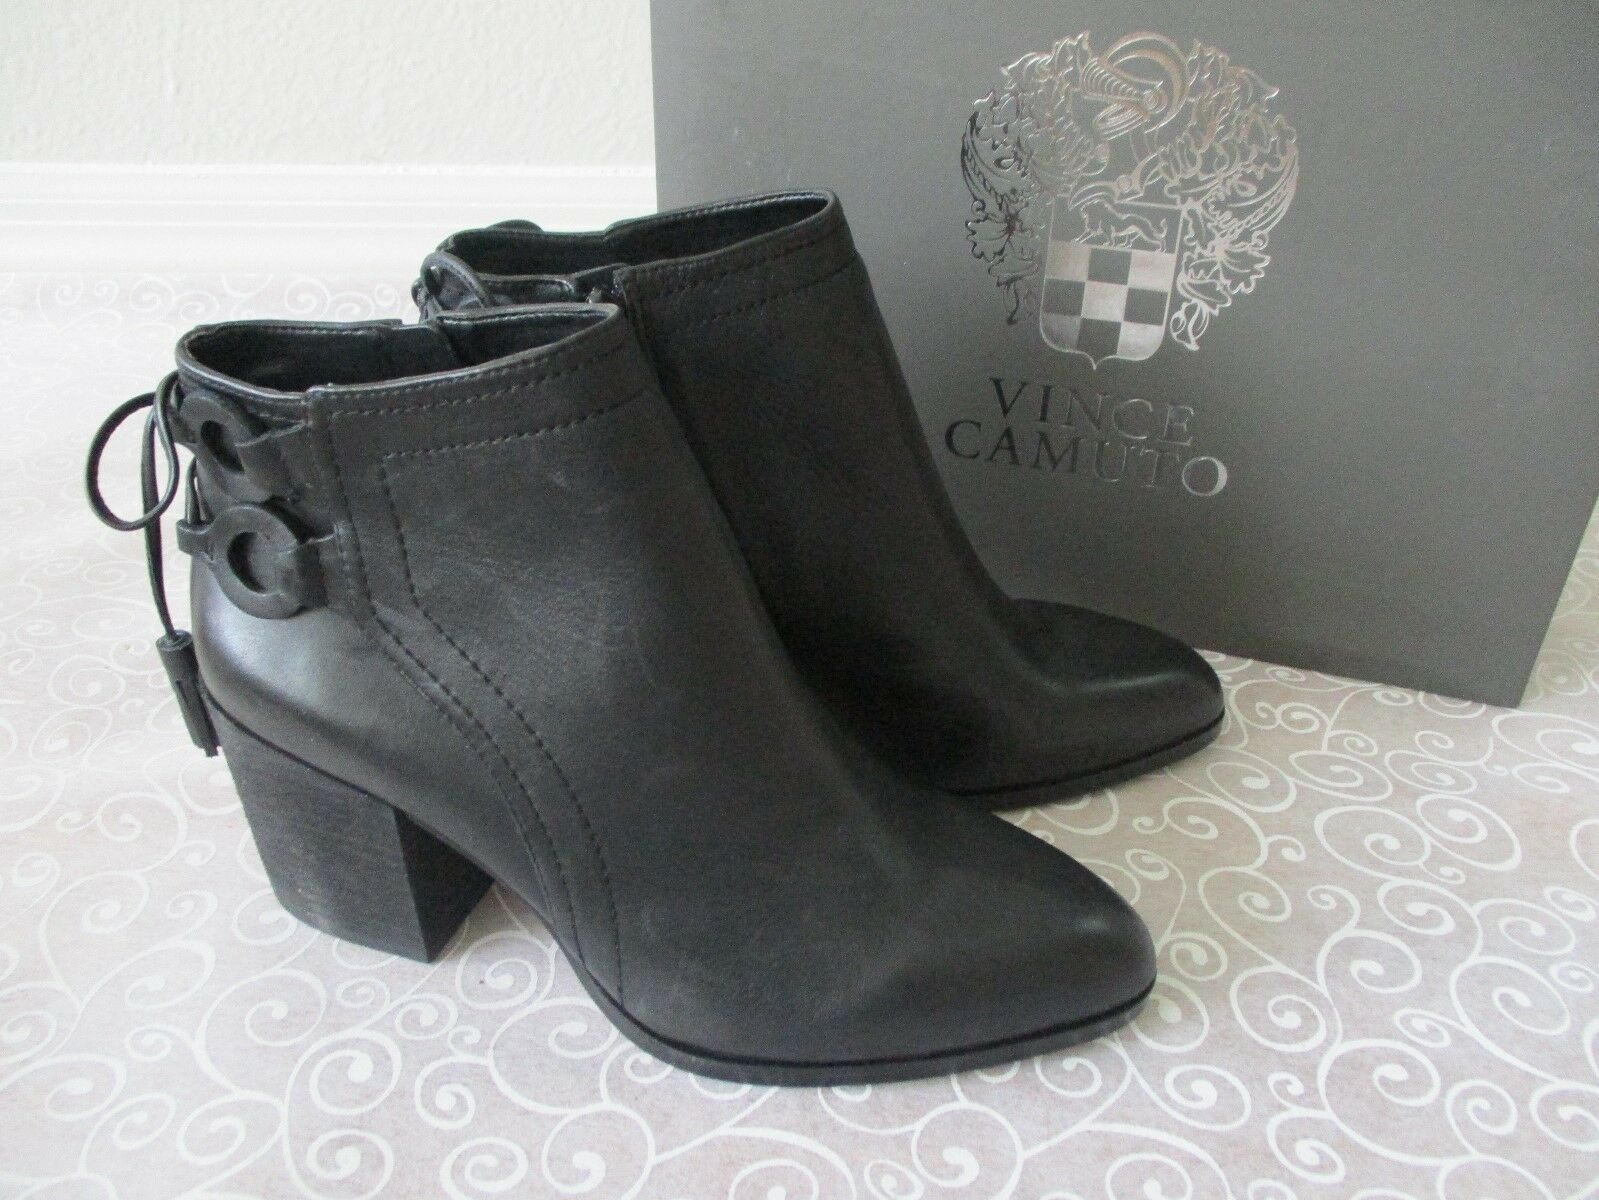 VINCE CAMUTO BLACK BLACK BLACK LEATHER ANKLE ZIP UP Stiefel SIZE 11 M - NEW c4e453